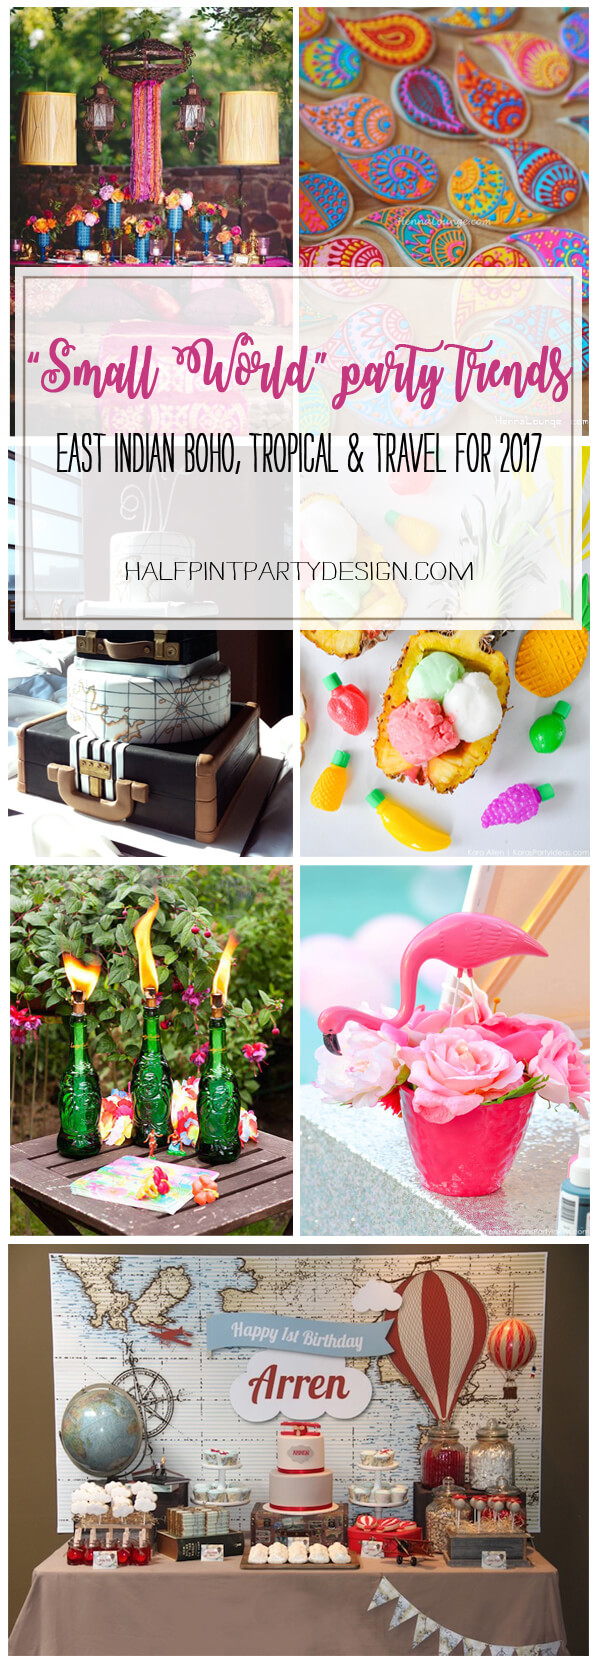 Small World Gets Big - Party Trends for 2017: Trend 4 | Halfpint Design